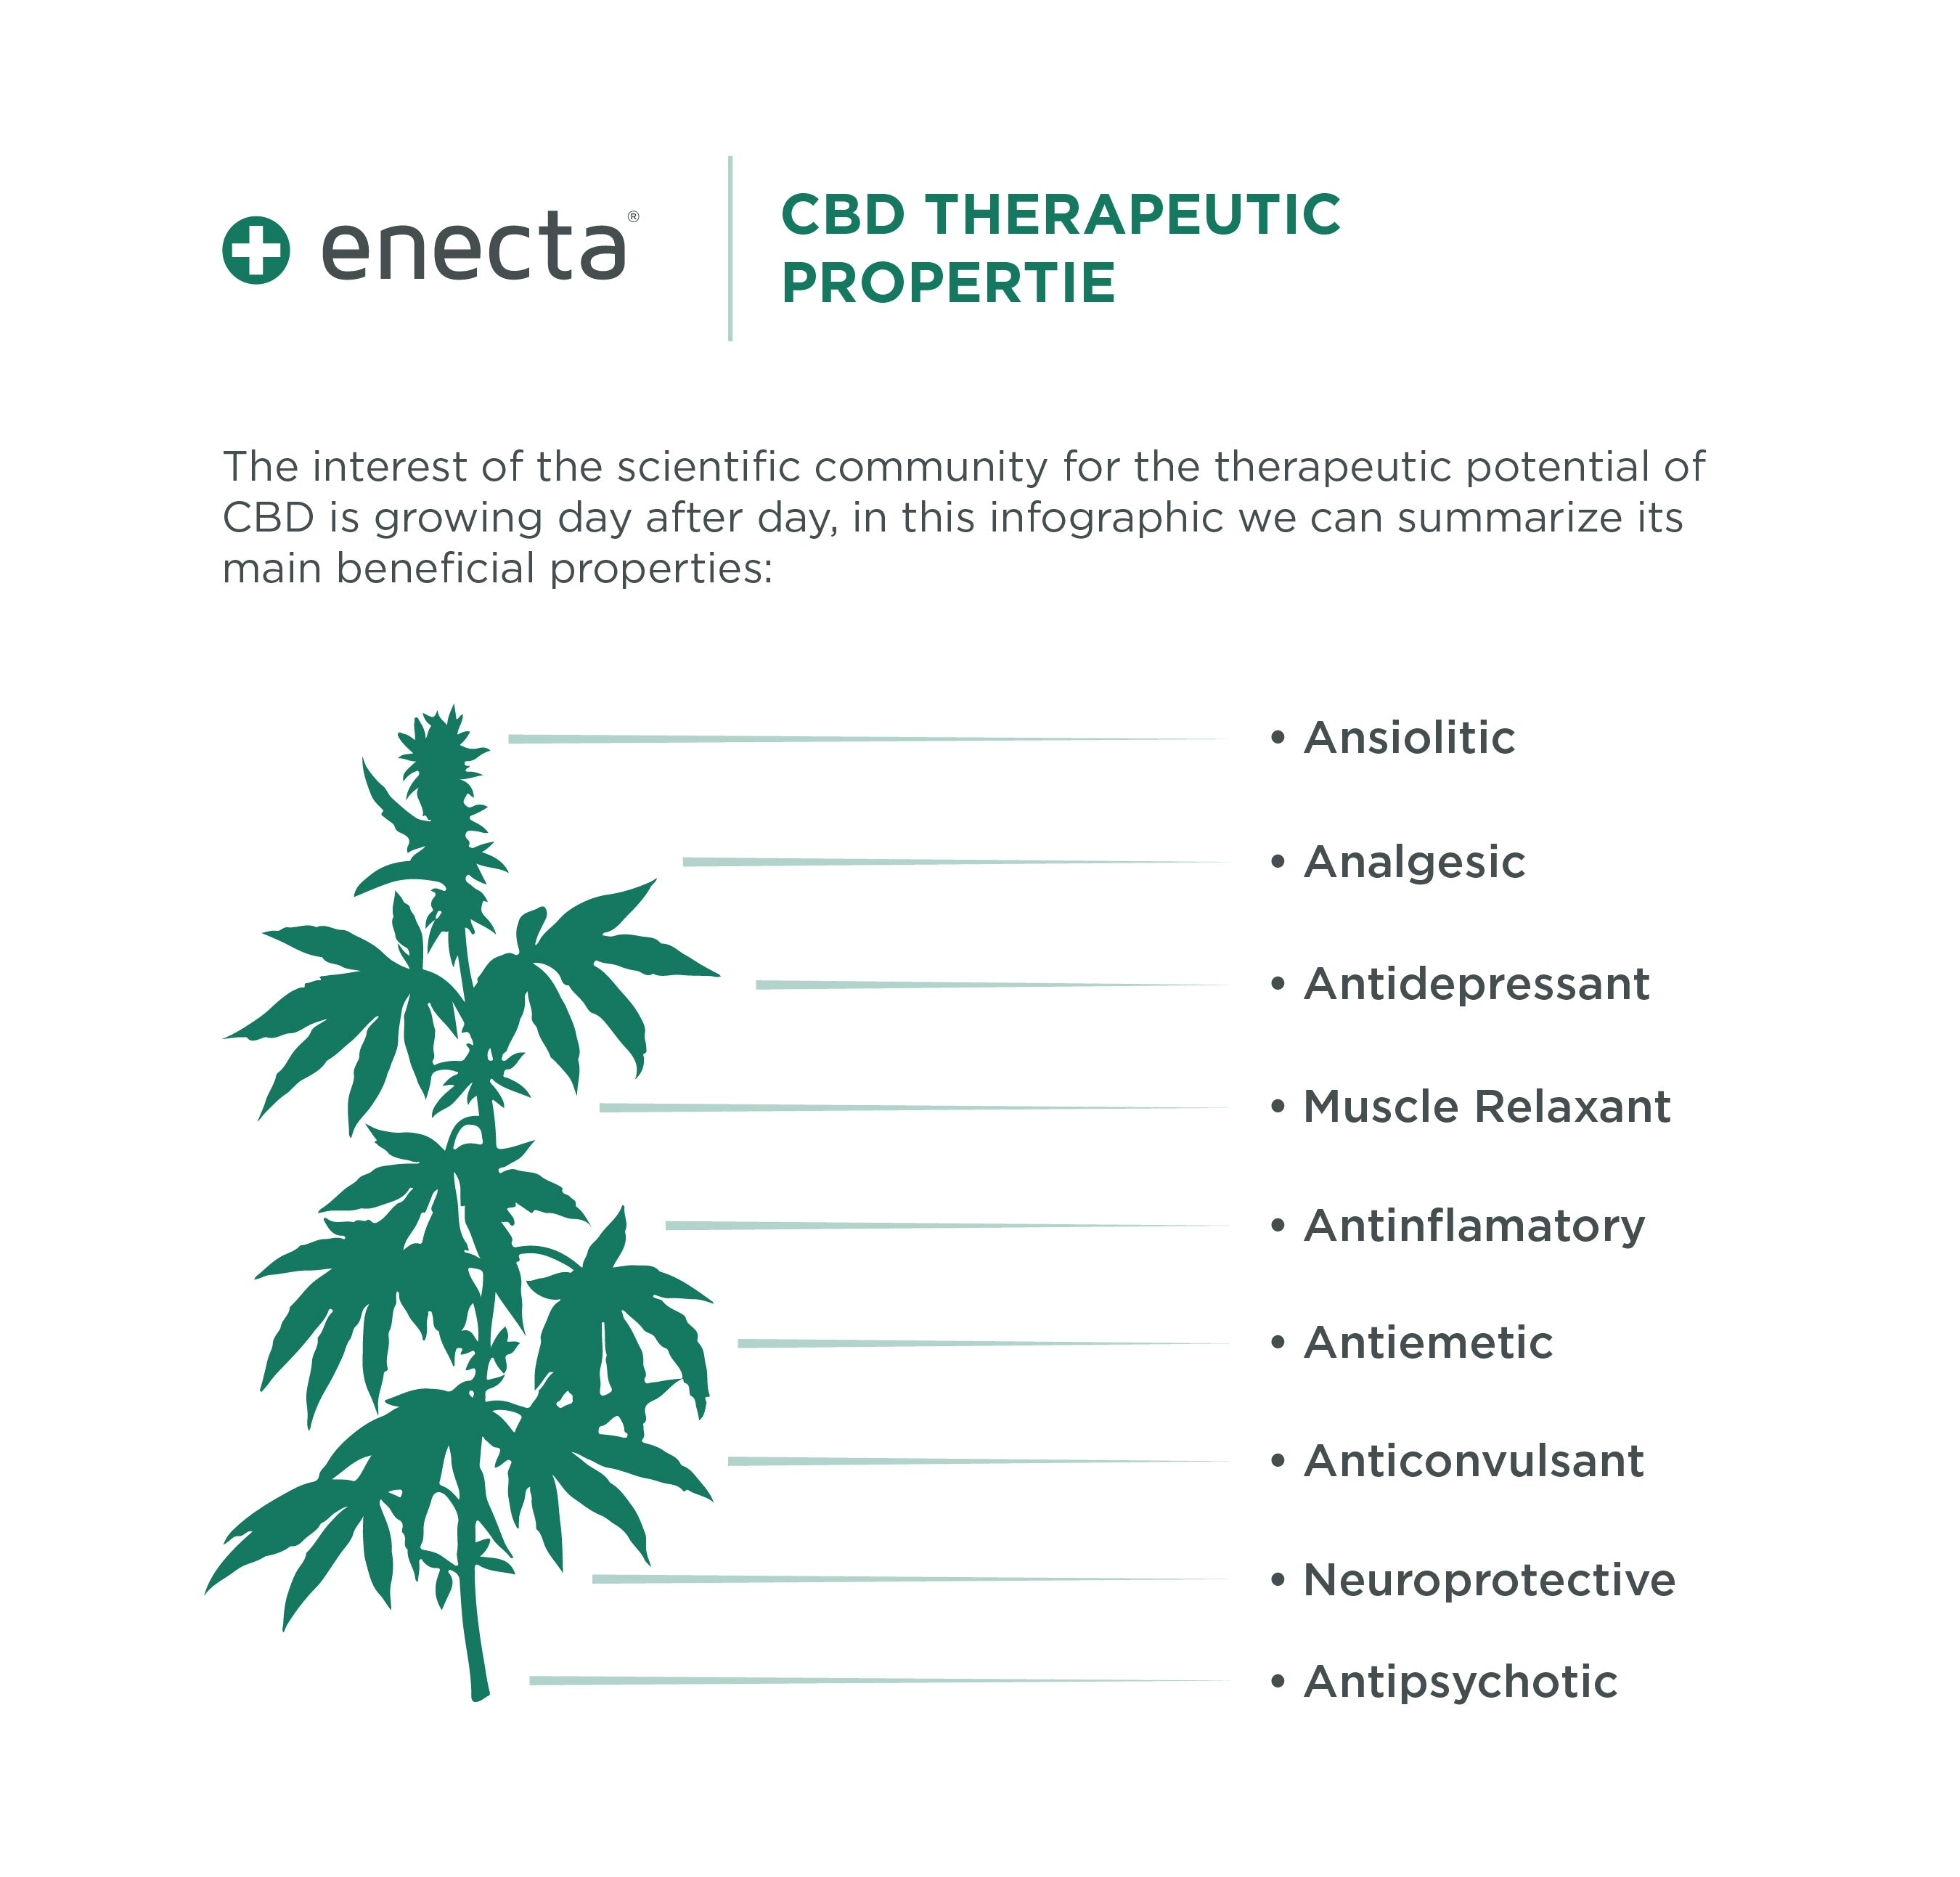 the theraputic properties of cbd